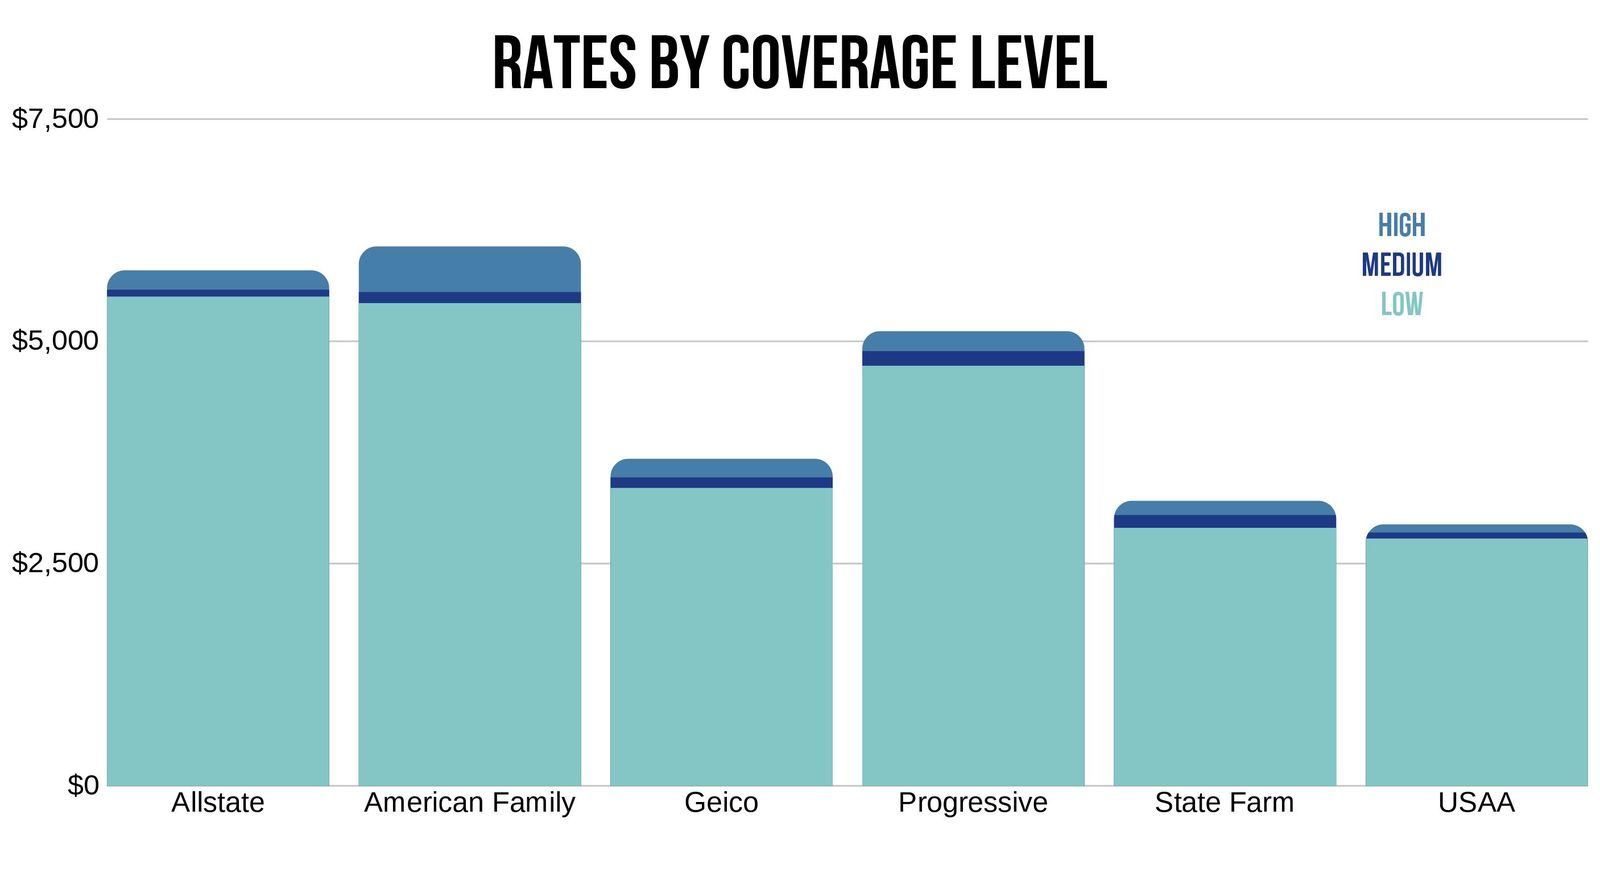 Car insurance rates in Amarillo based on coverage level